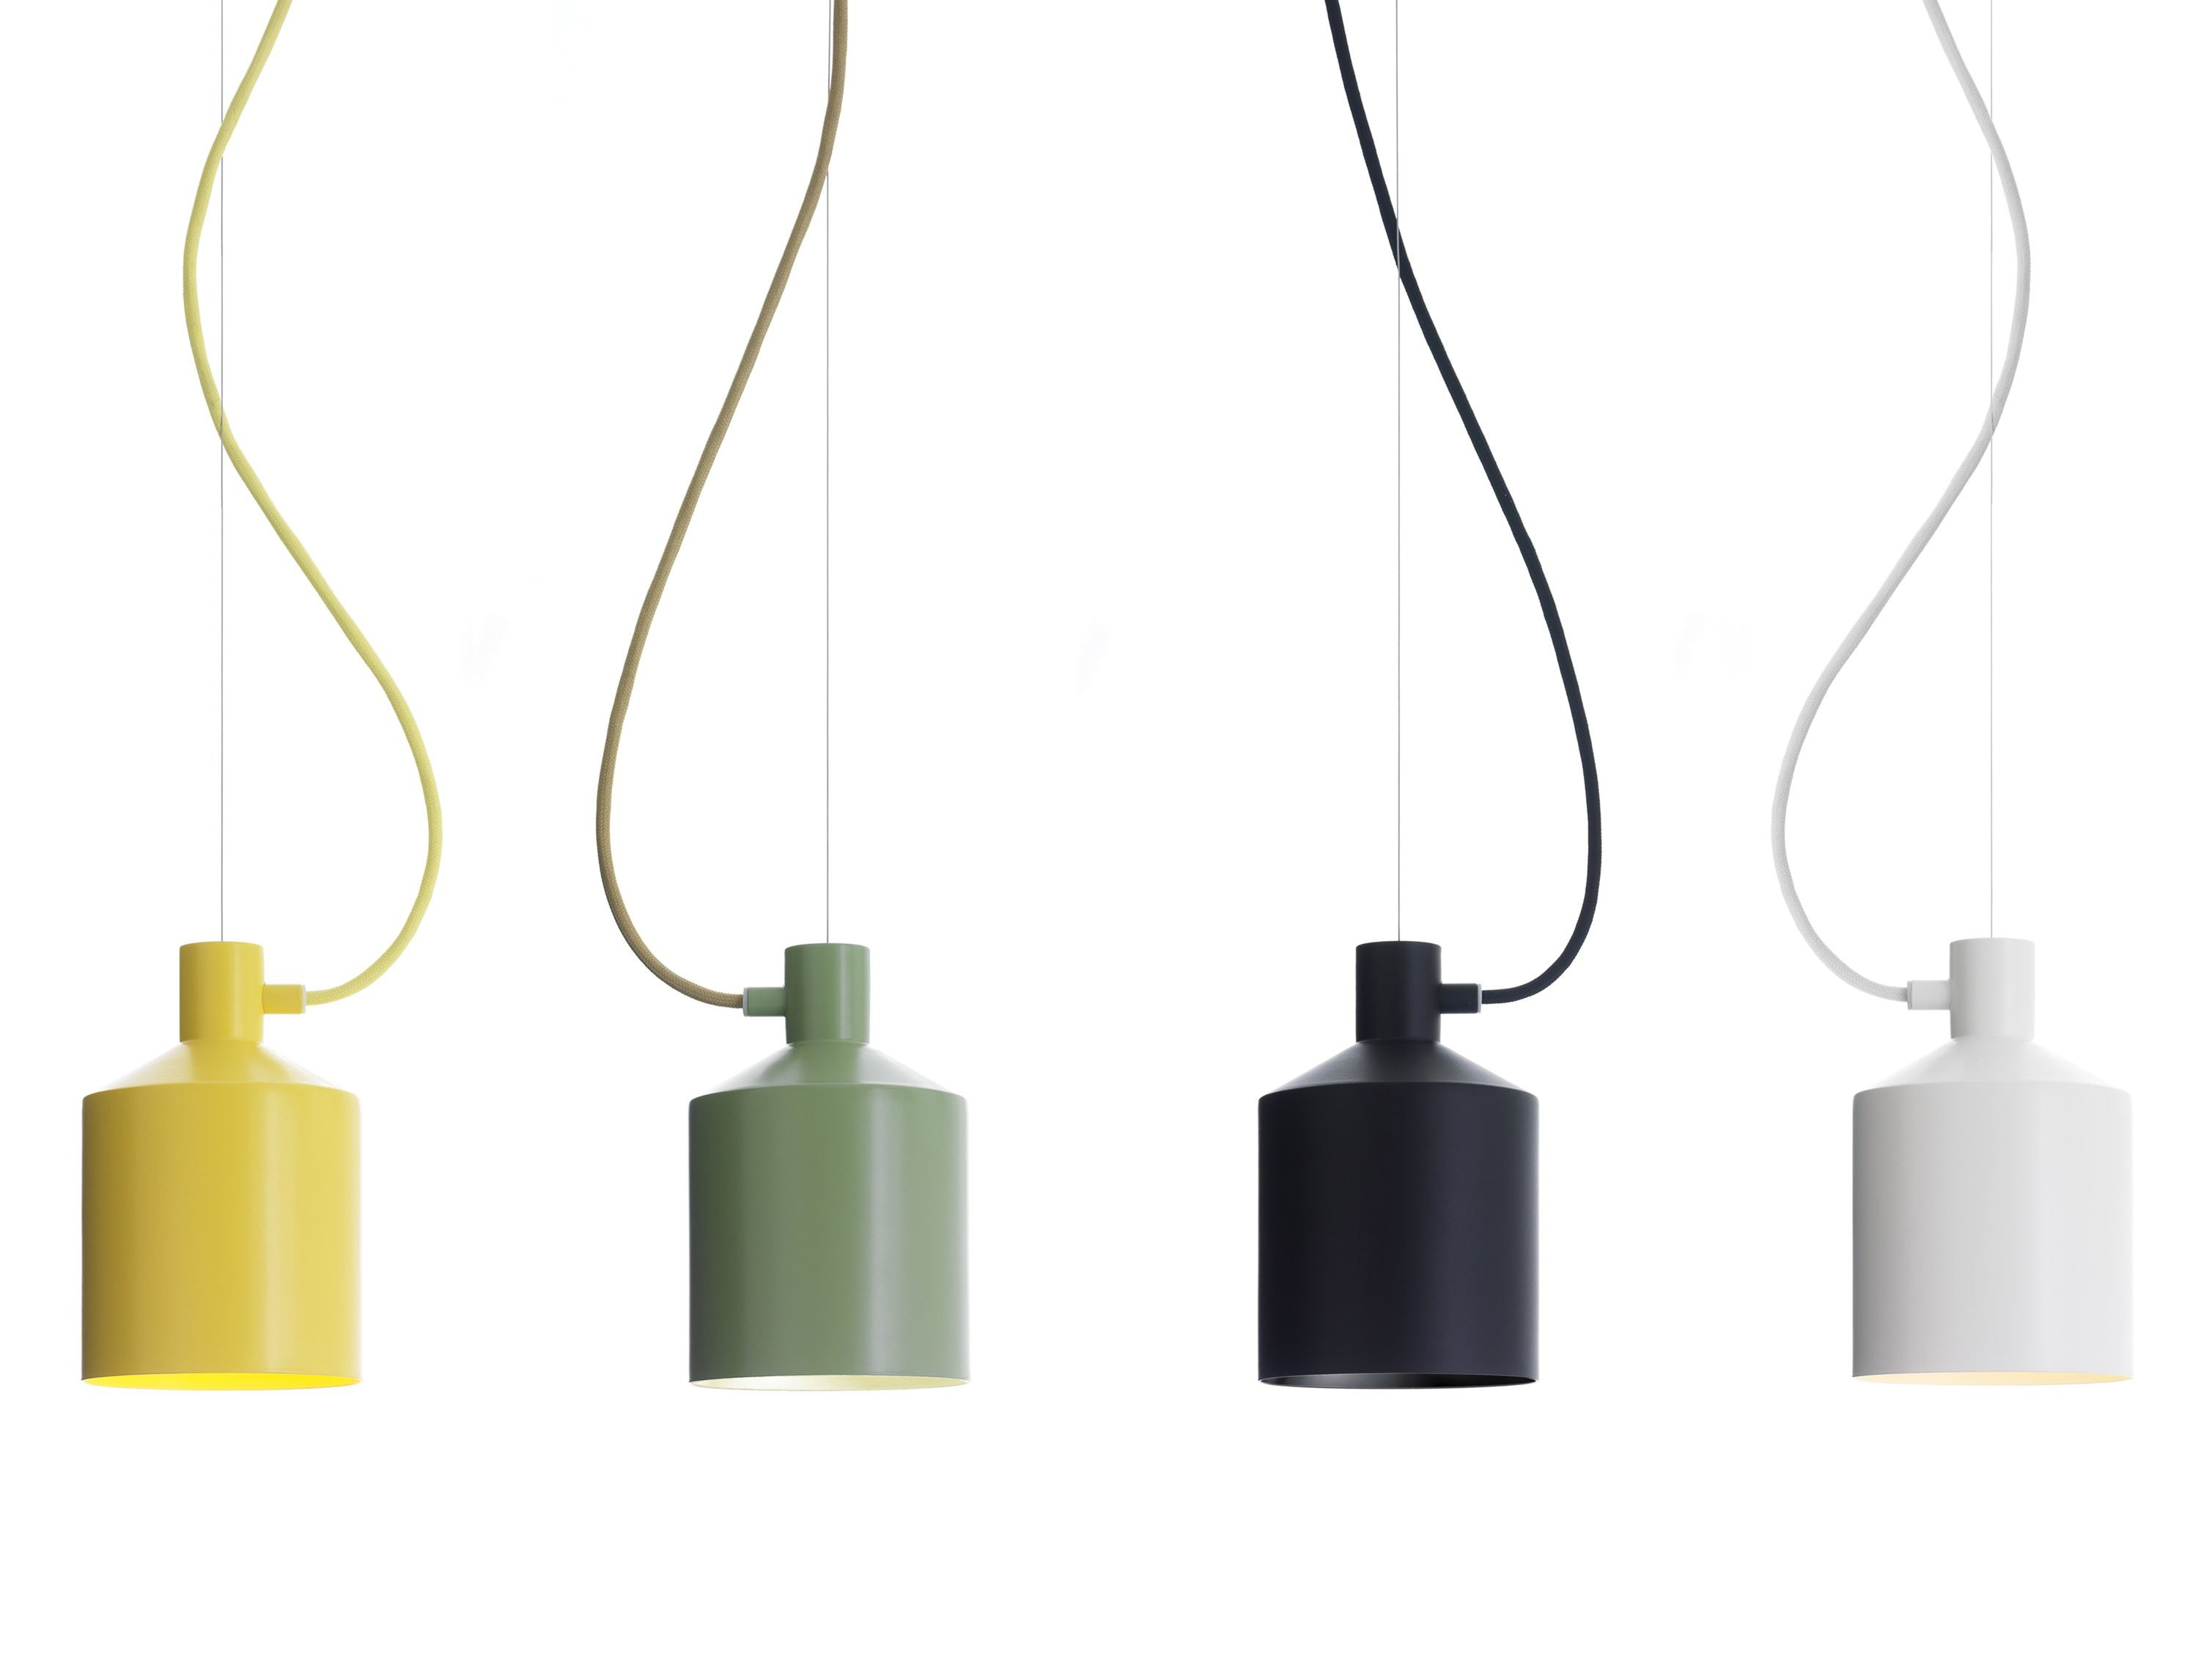 Glass insulator pendant light kit feed - Playful Colored Pendant Light Plug In With Black Grey Yellow And White Tone With Colorful Cable